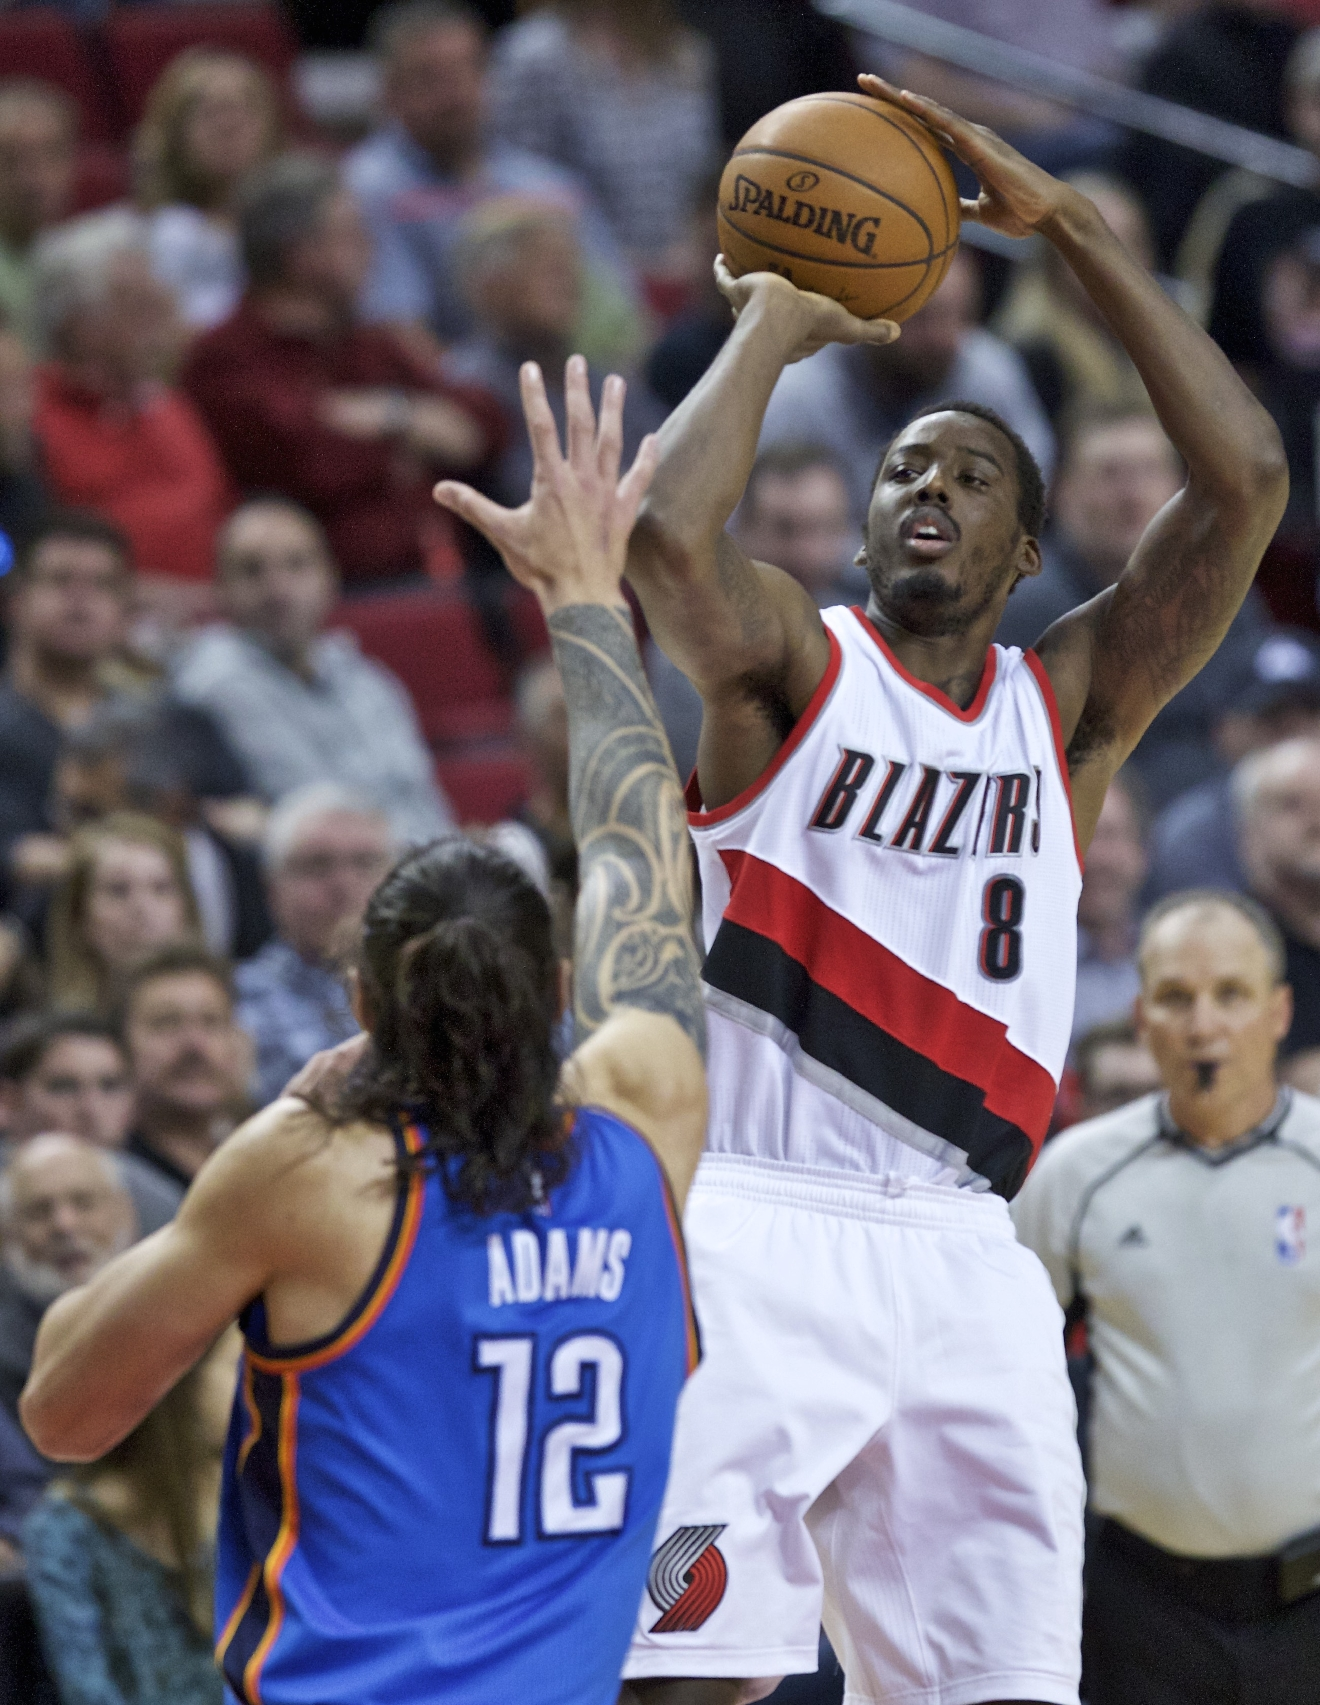 Portland Trail Blazers forward Al-Farouq Aminu shoots over Oklahoma City Thunder center Steven Adams during the second half of an NBA basketball game in Portland, Ore., Wednesday, April 6, 2016. (AP Photo/Craig Mitchelldyer)